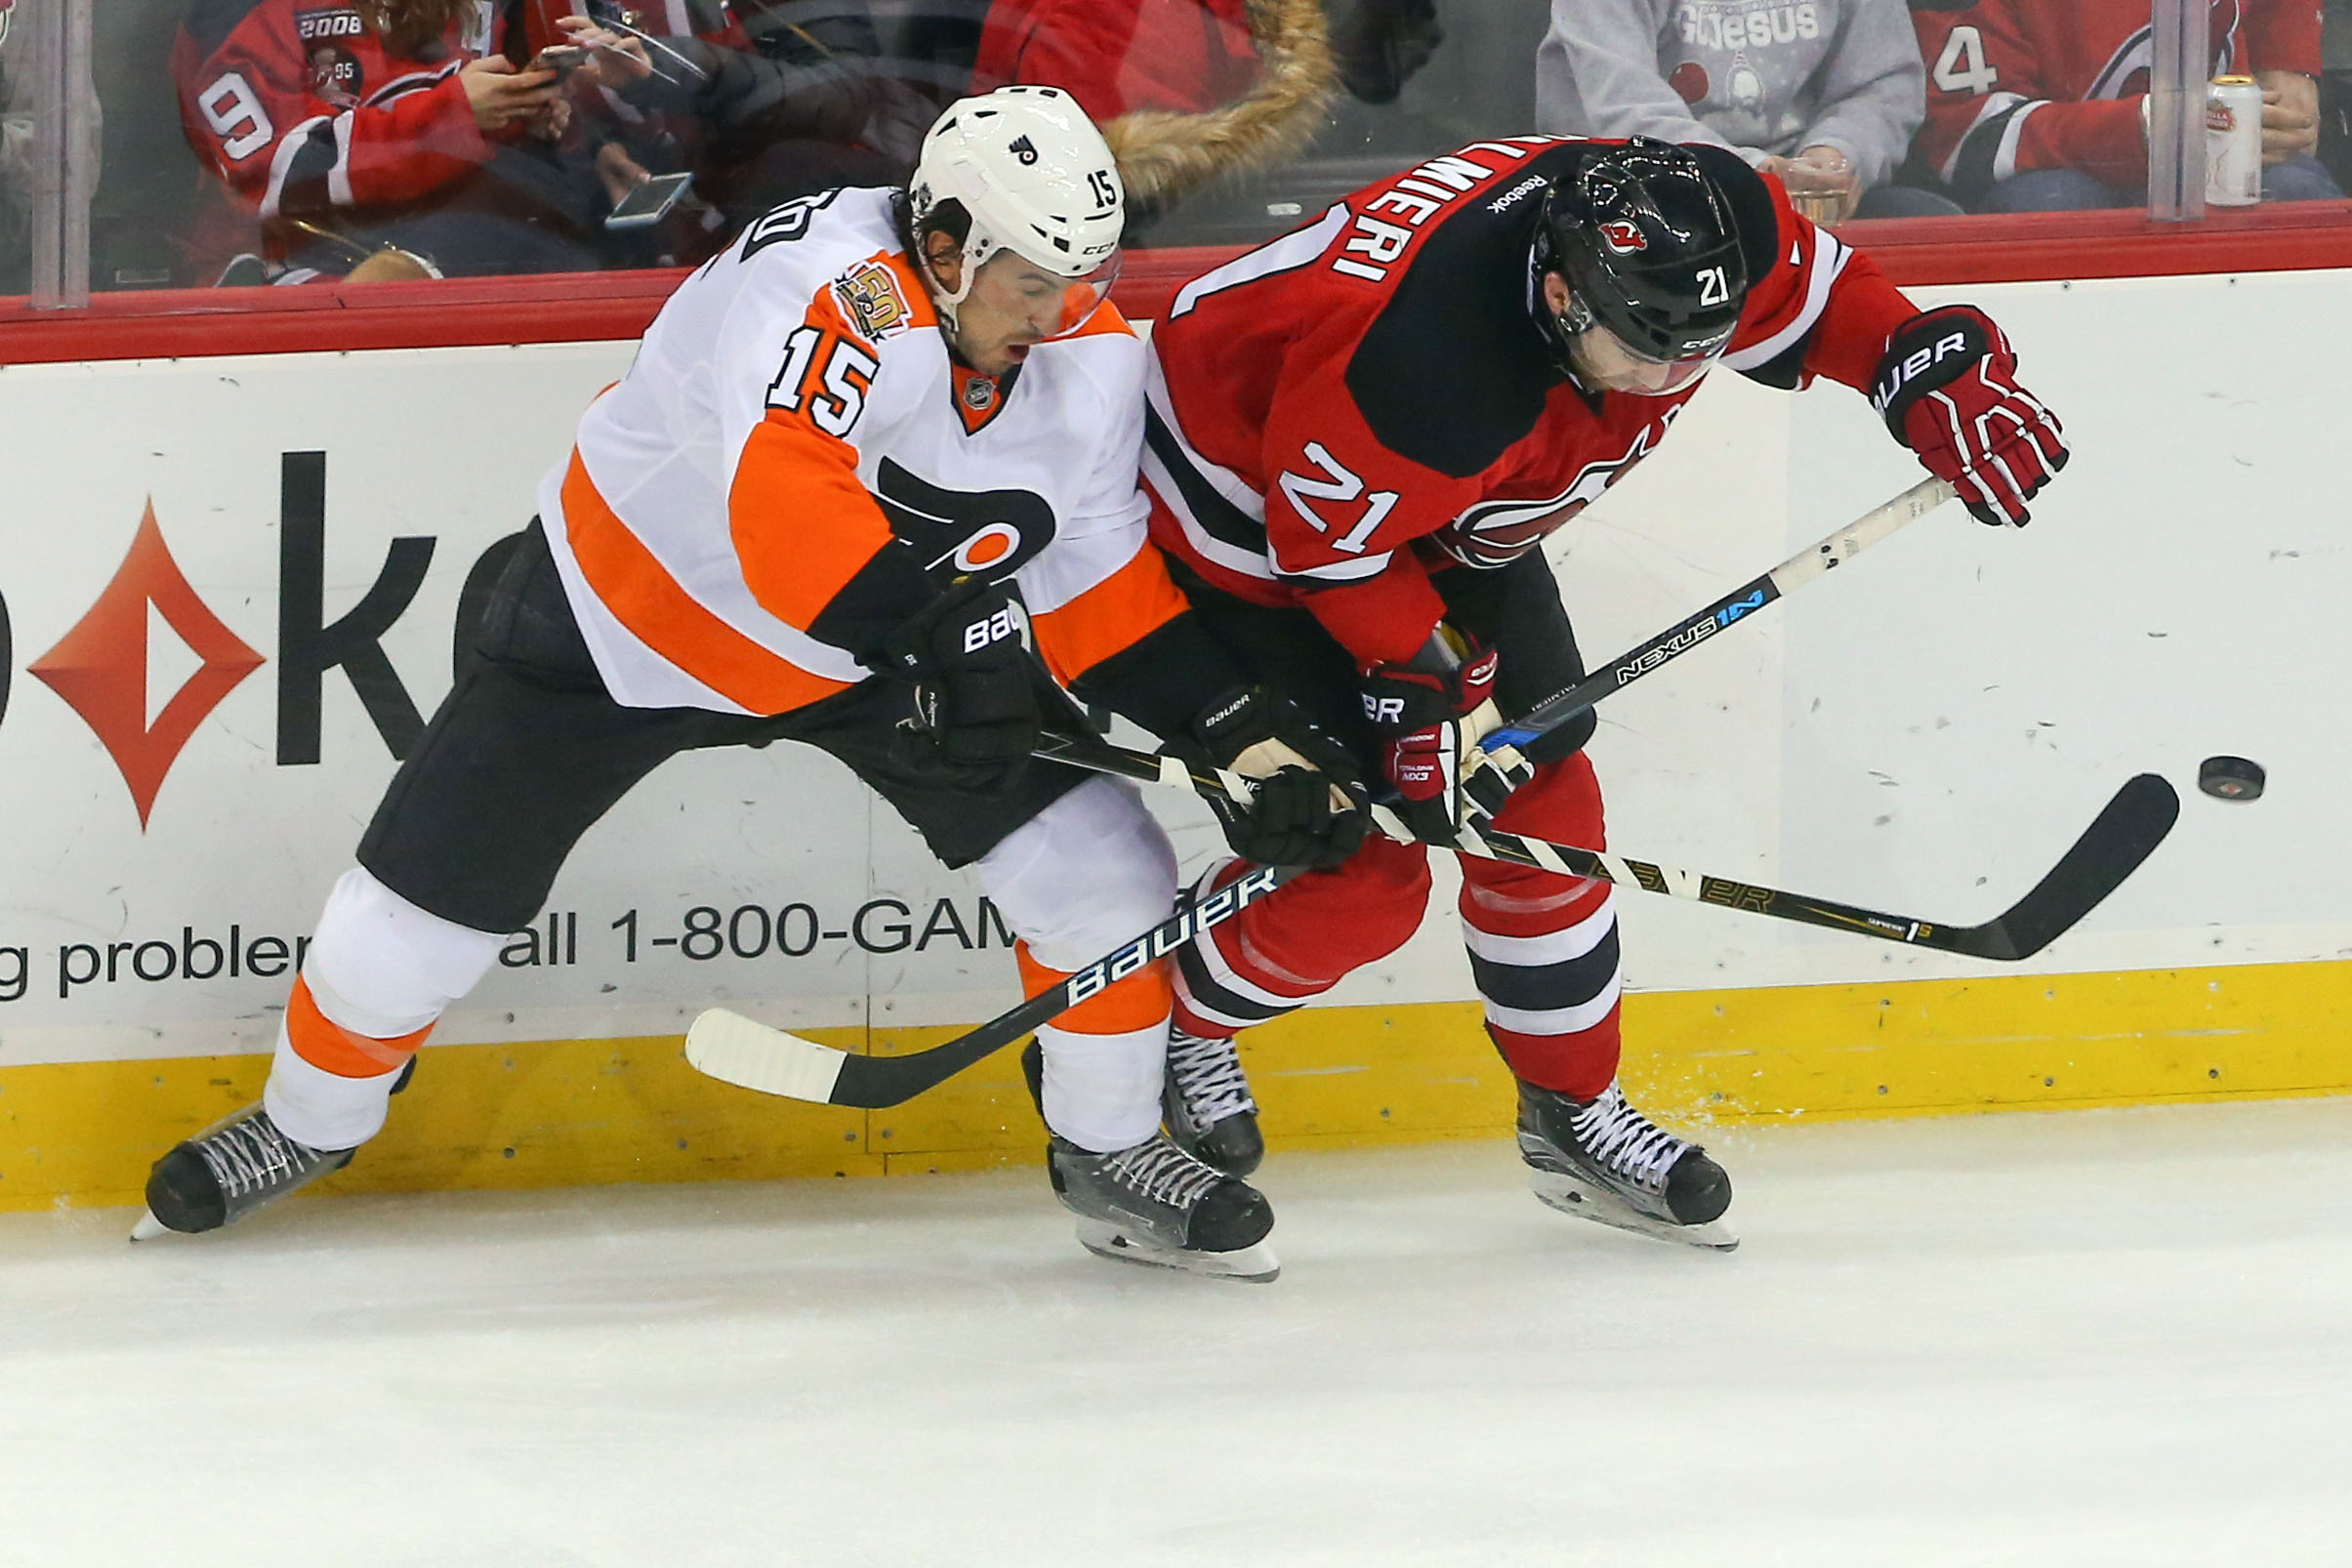 9763499-nhl-philadelphia-flyers-at-new-jersey-devils